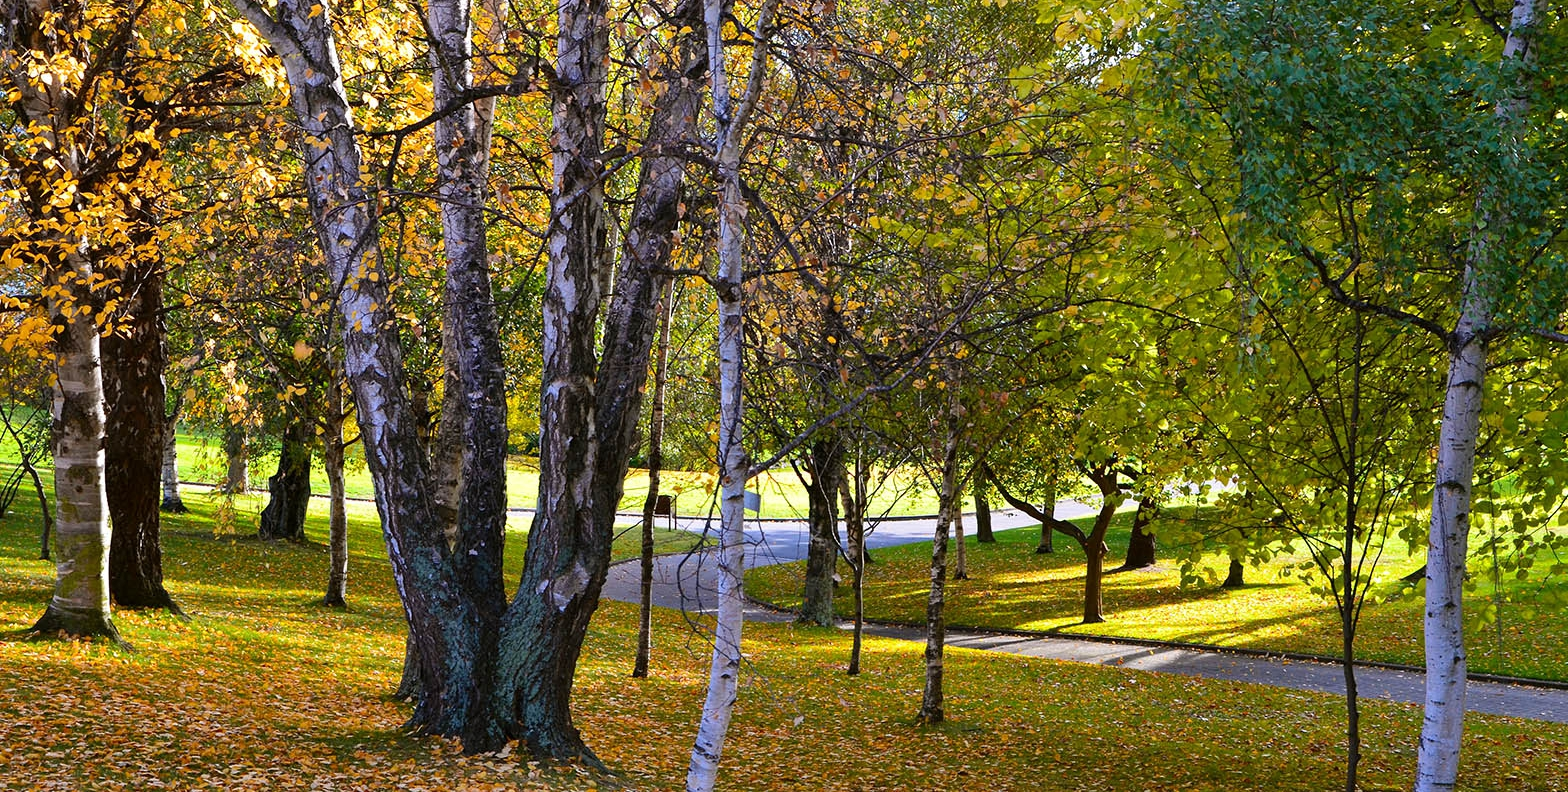 Royal Tasmanian Botanical Gardens with deciduous trees in colour and fallen leaves on the ground - Autumn 2013